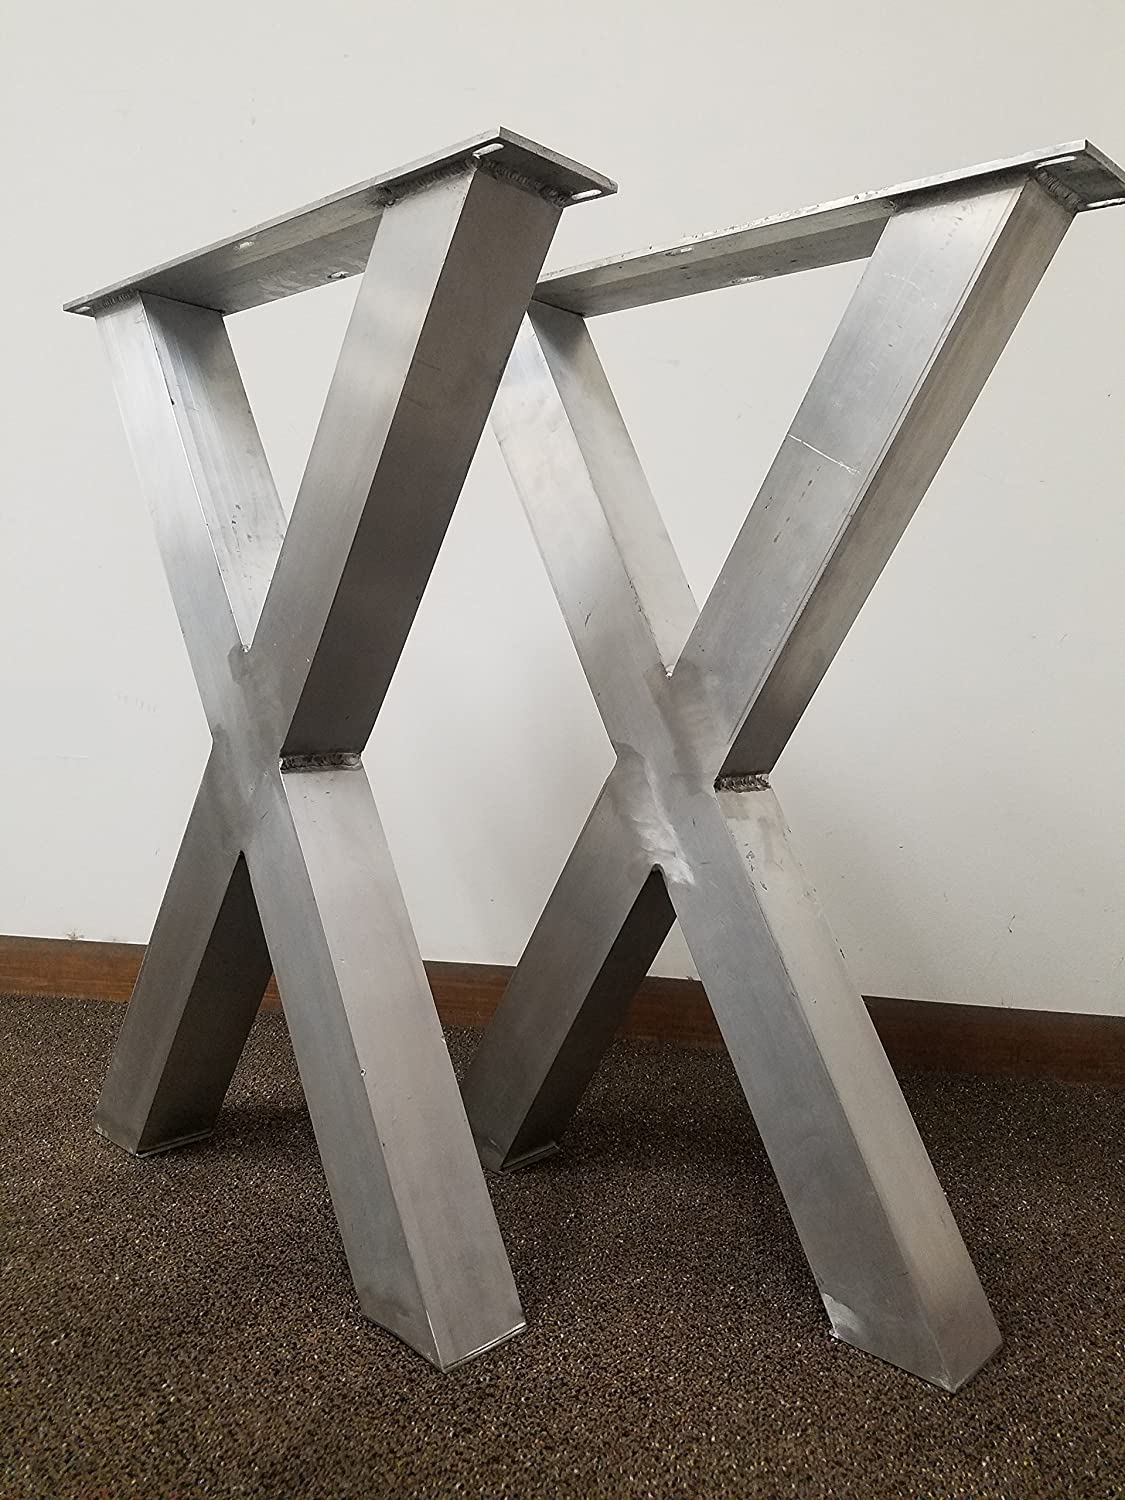 Metal Table Legs, Aluminum X-Frame Style - Any Size and Color!